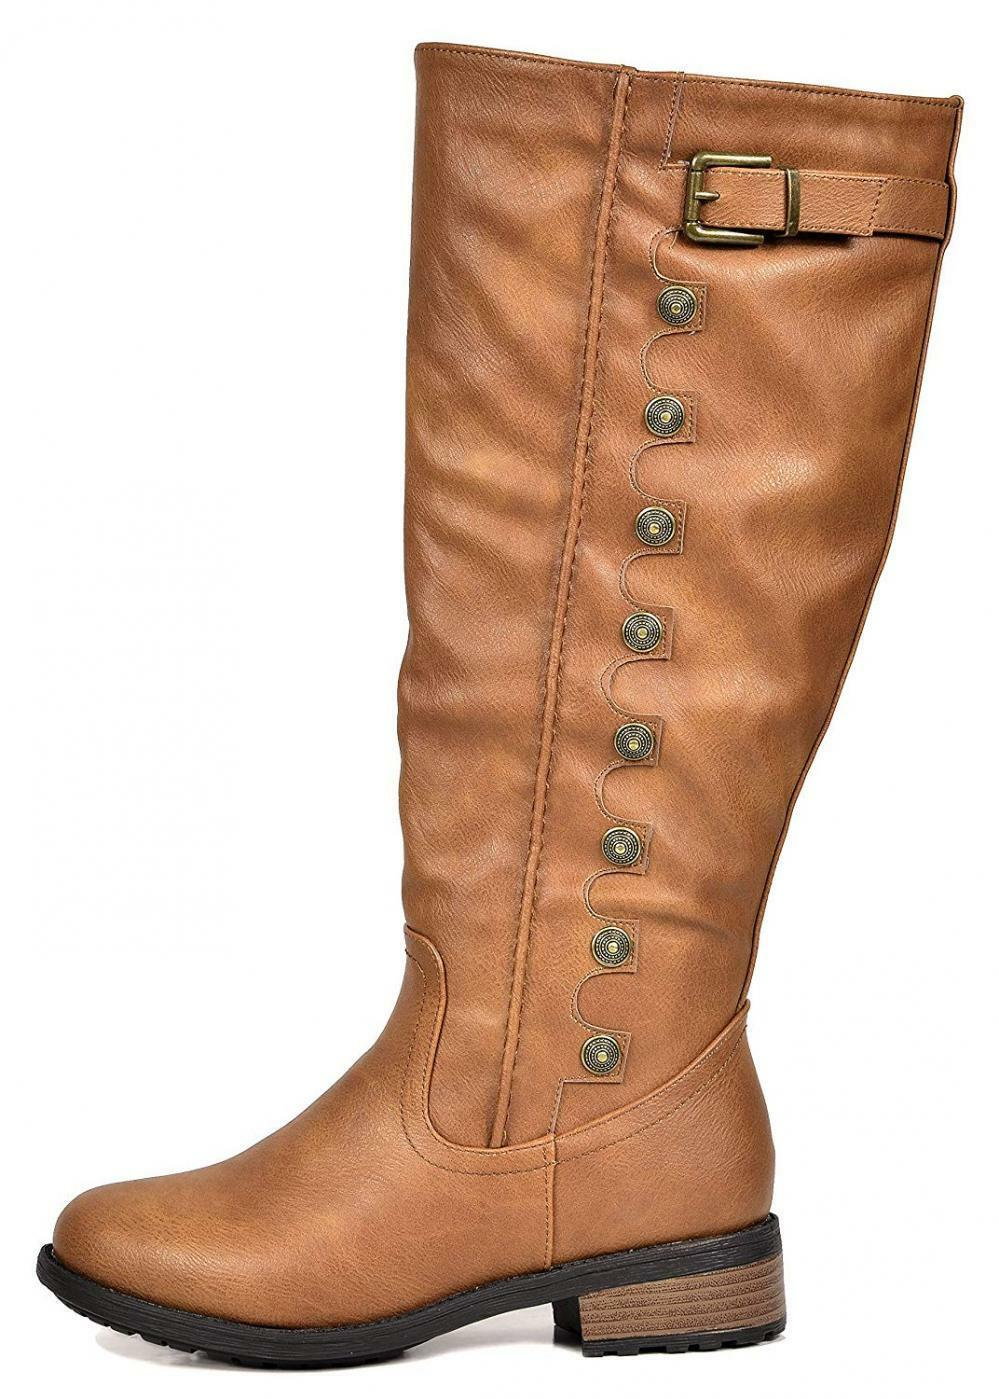 DREAM PAIRS Women's Army Camel Camel Camel Pu Leather Knee High Winter Riding Boots Size... 6dc870